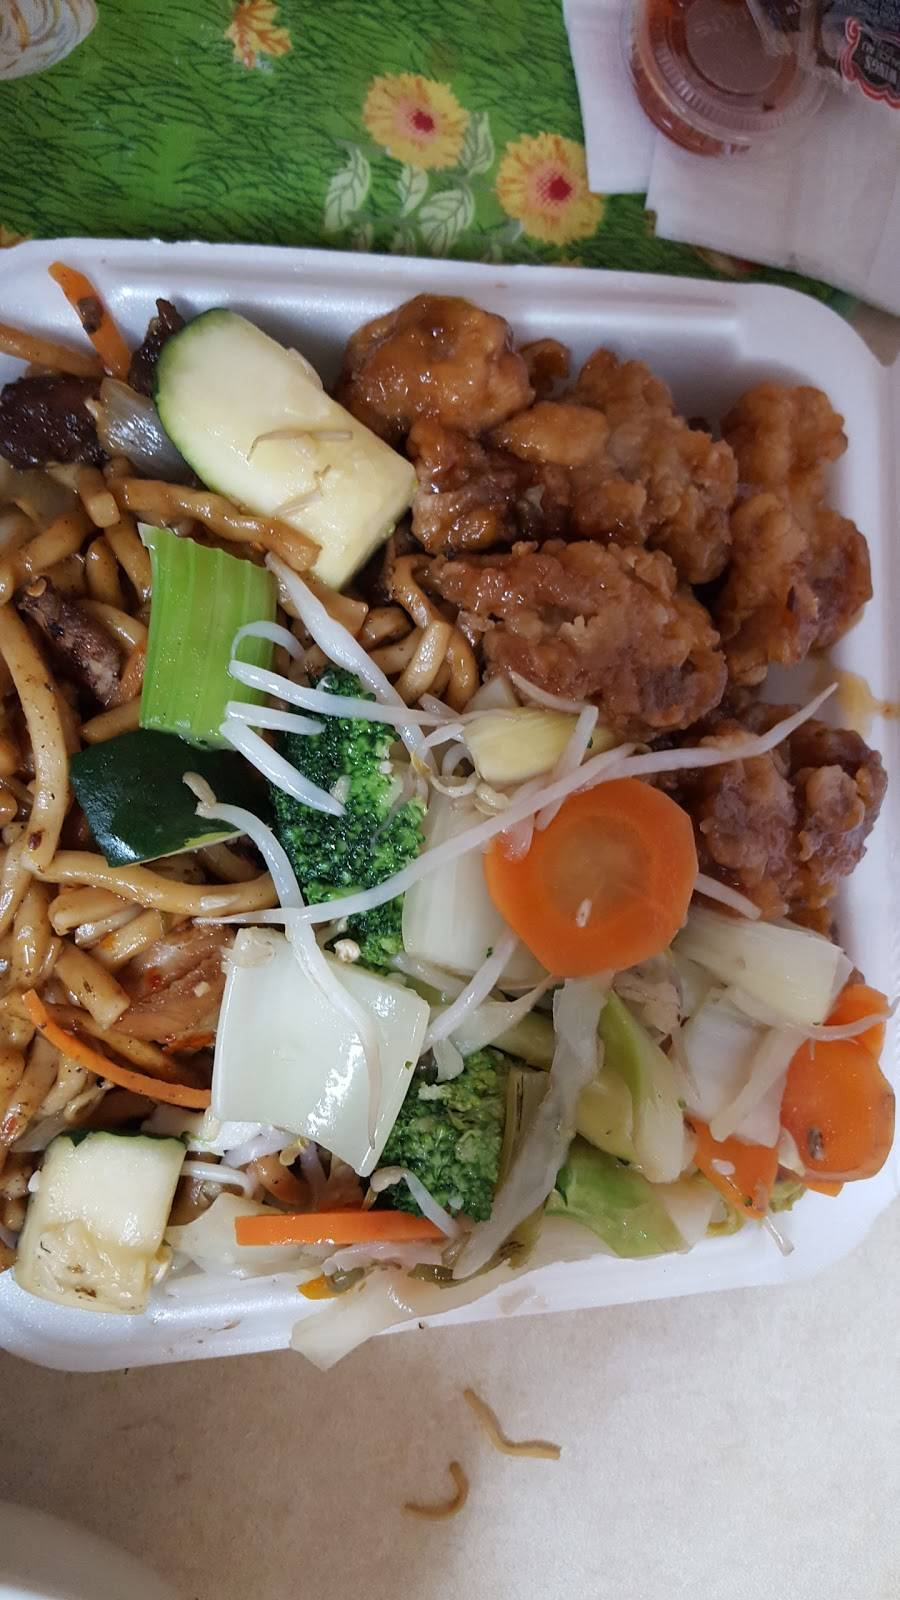 Asian Gourmet | restaurant | 1530 Albion Rd, Etobicoke, ON M9V 1B4, Canada | 4167426693 OR +1 416-742-6693